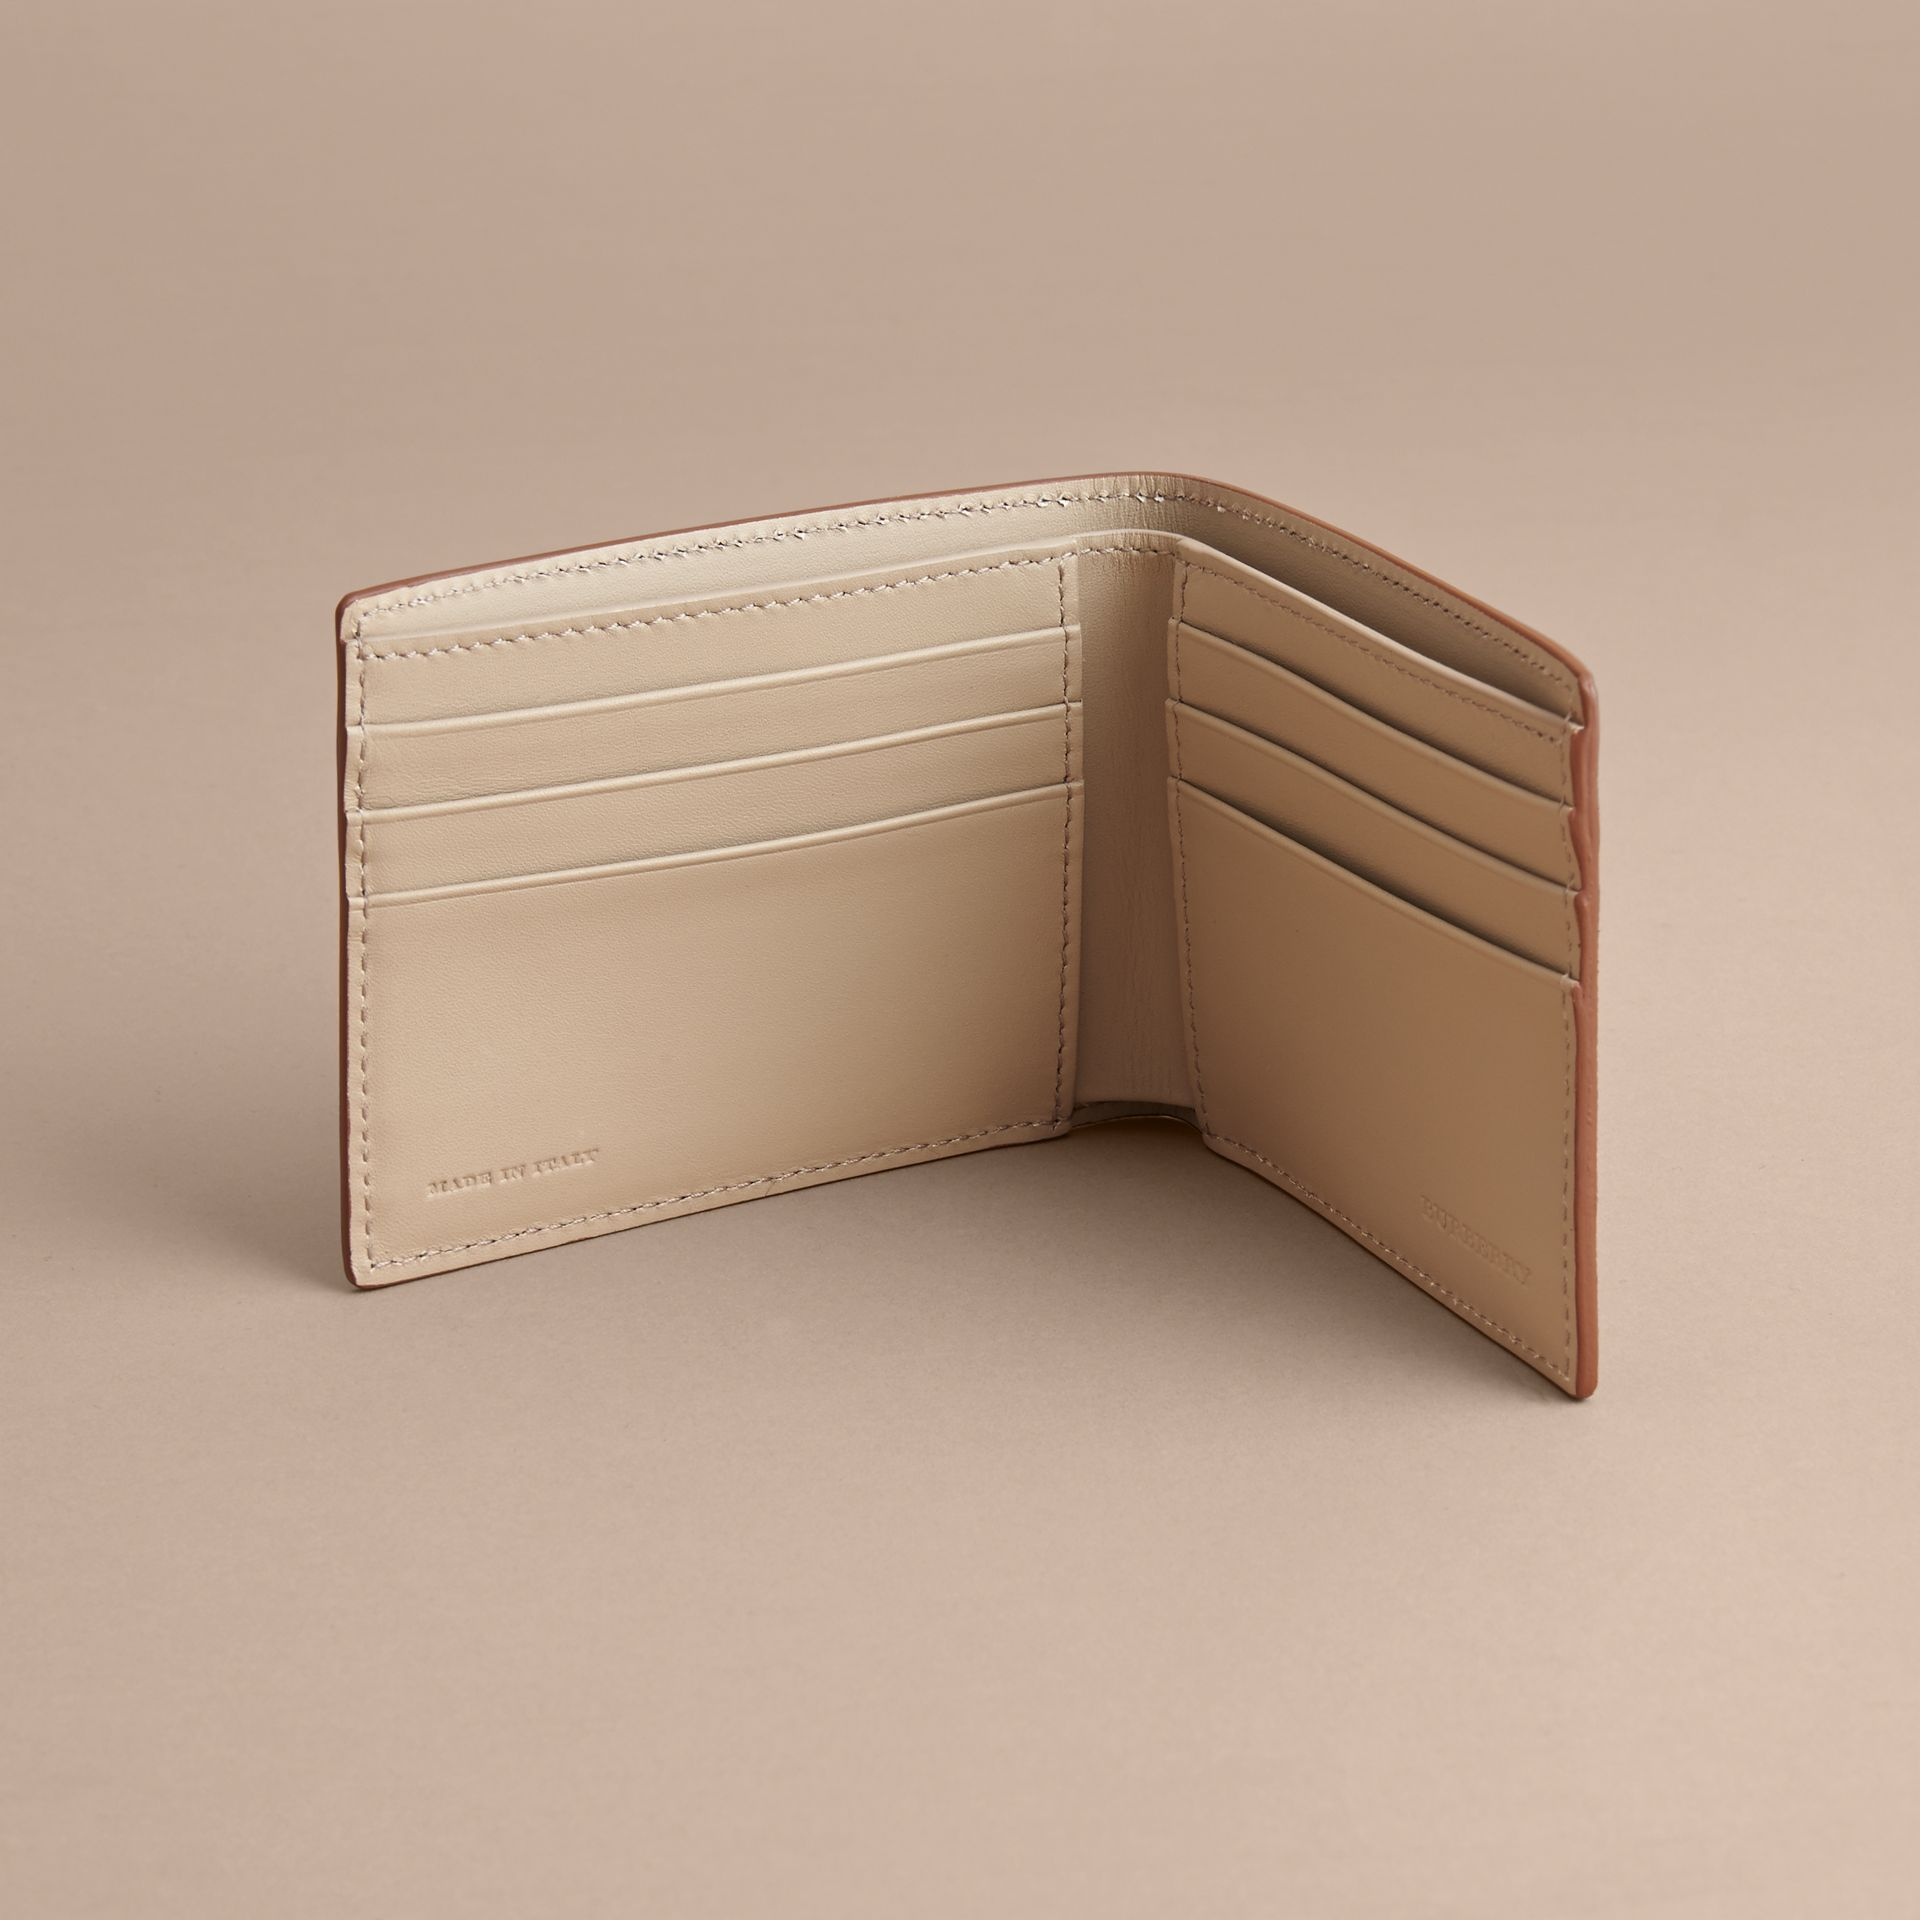 London Leather Bifold Wallet in Tan | Burberry United States - gallery image 5